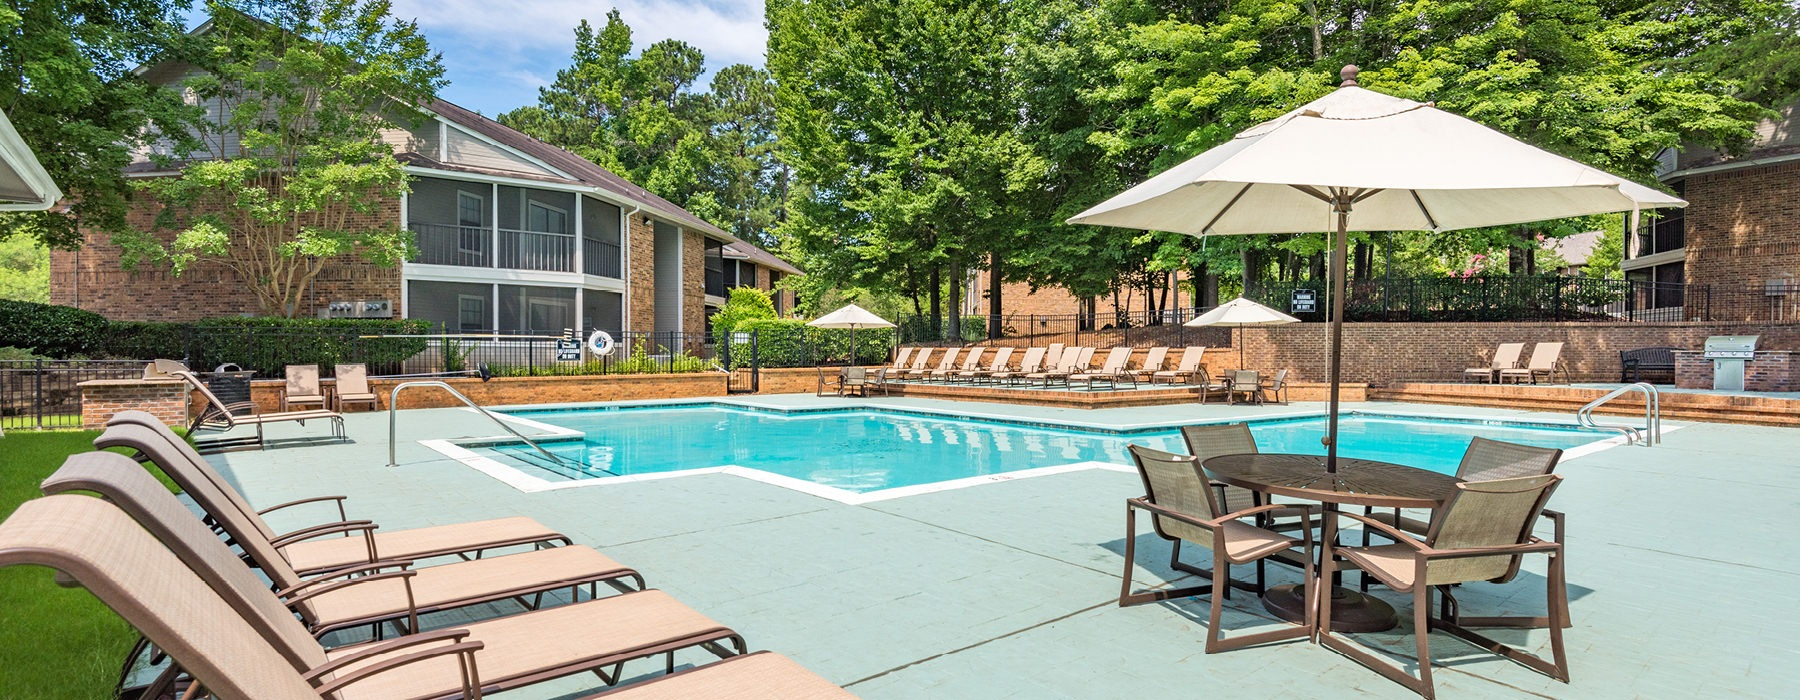 outdoor pool with sundeck and lounge chairs